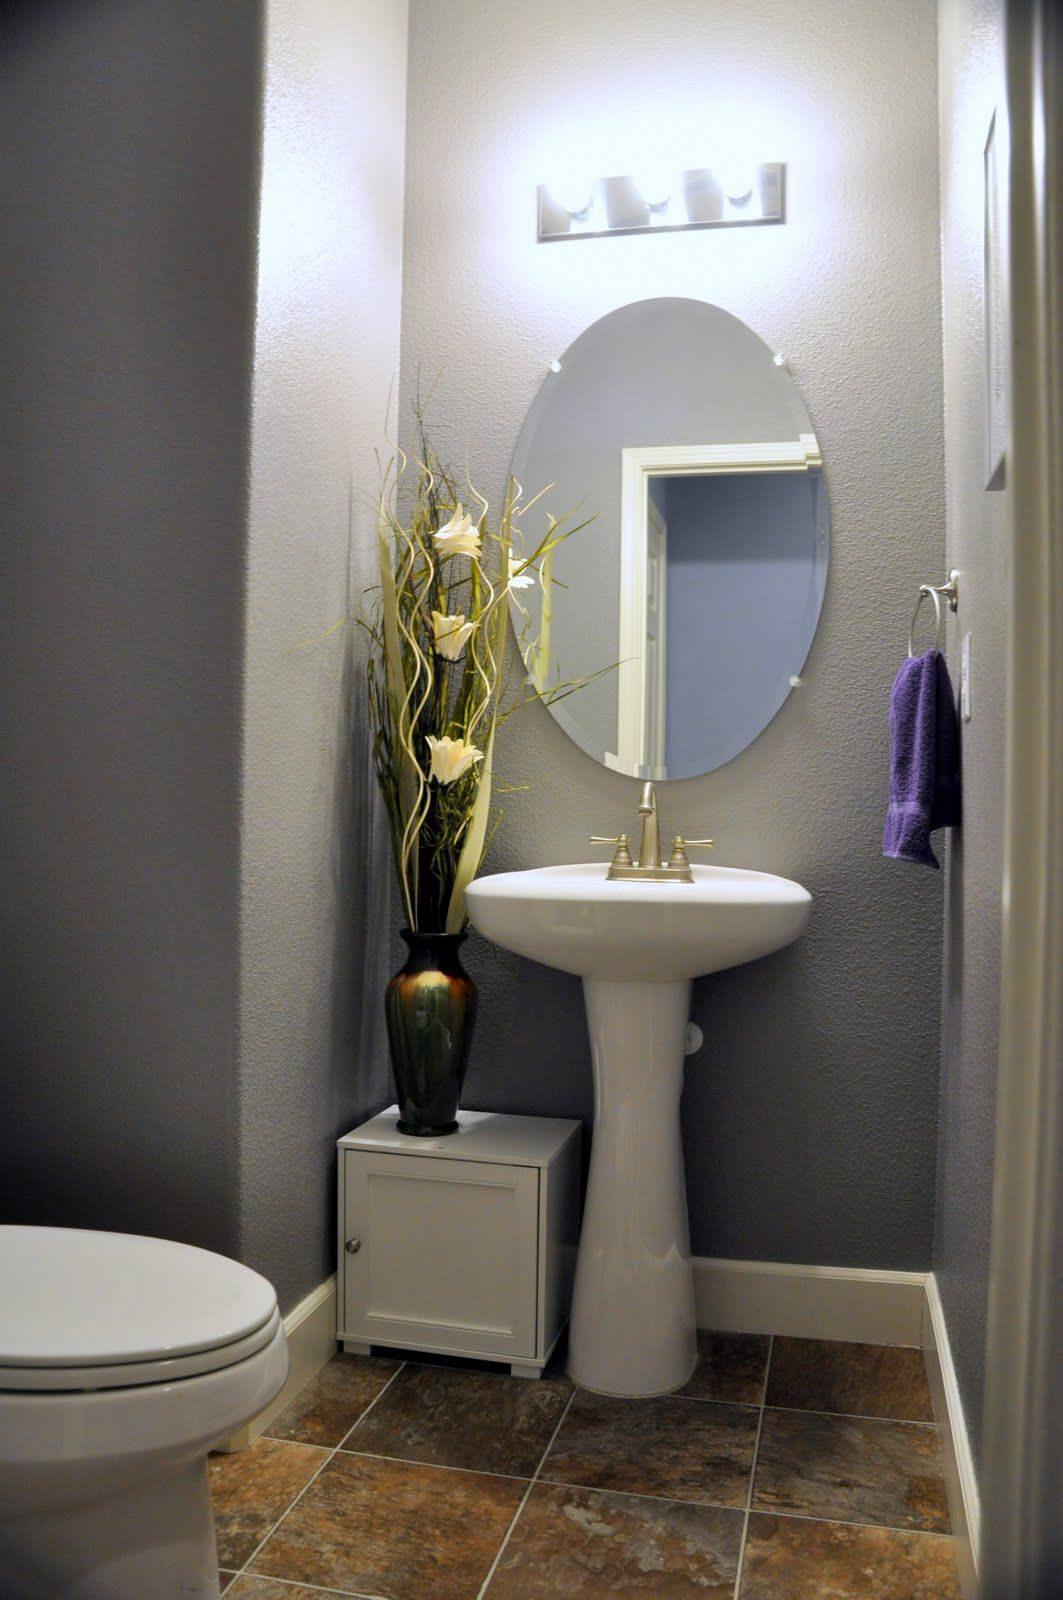 Oval Mirrors Bathroom Pedestal Sink Bathroom Designs Google Search For The Home